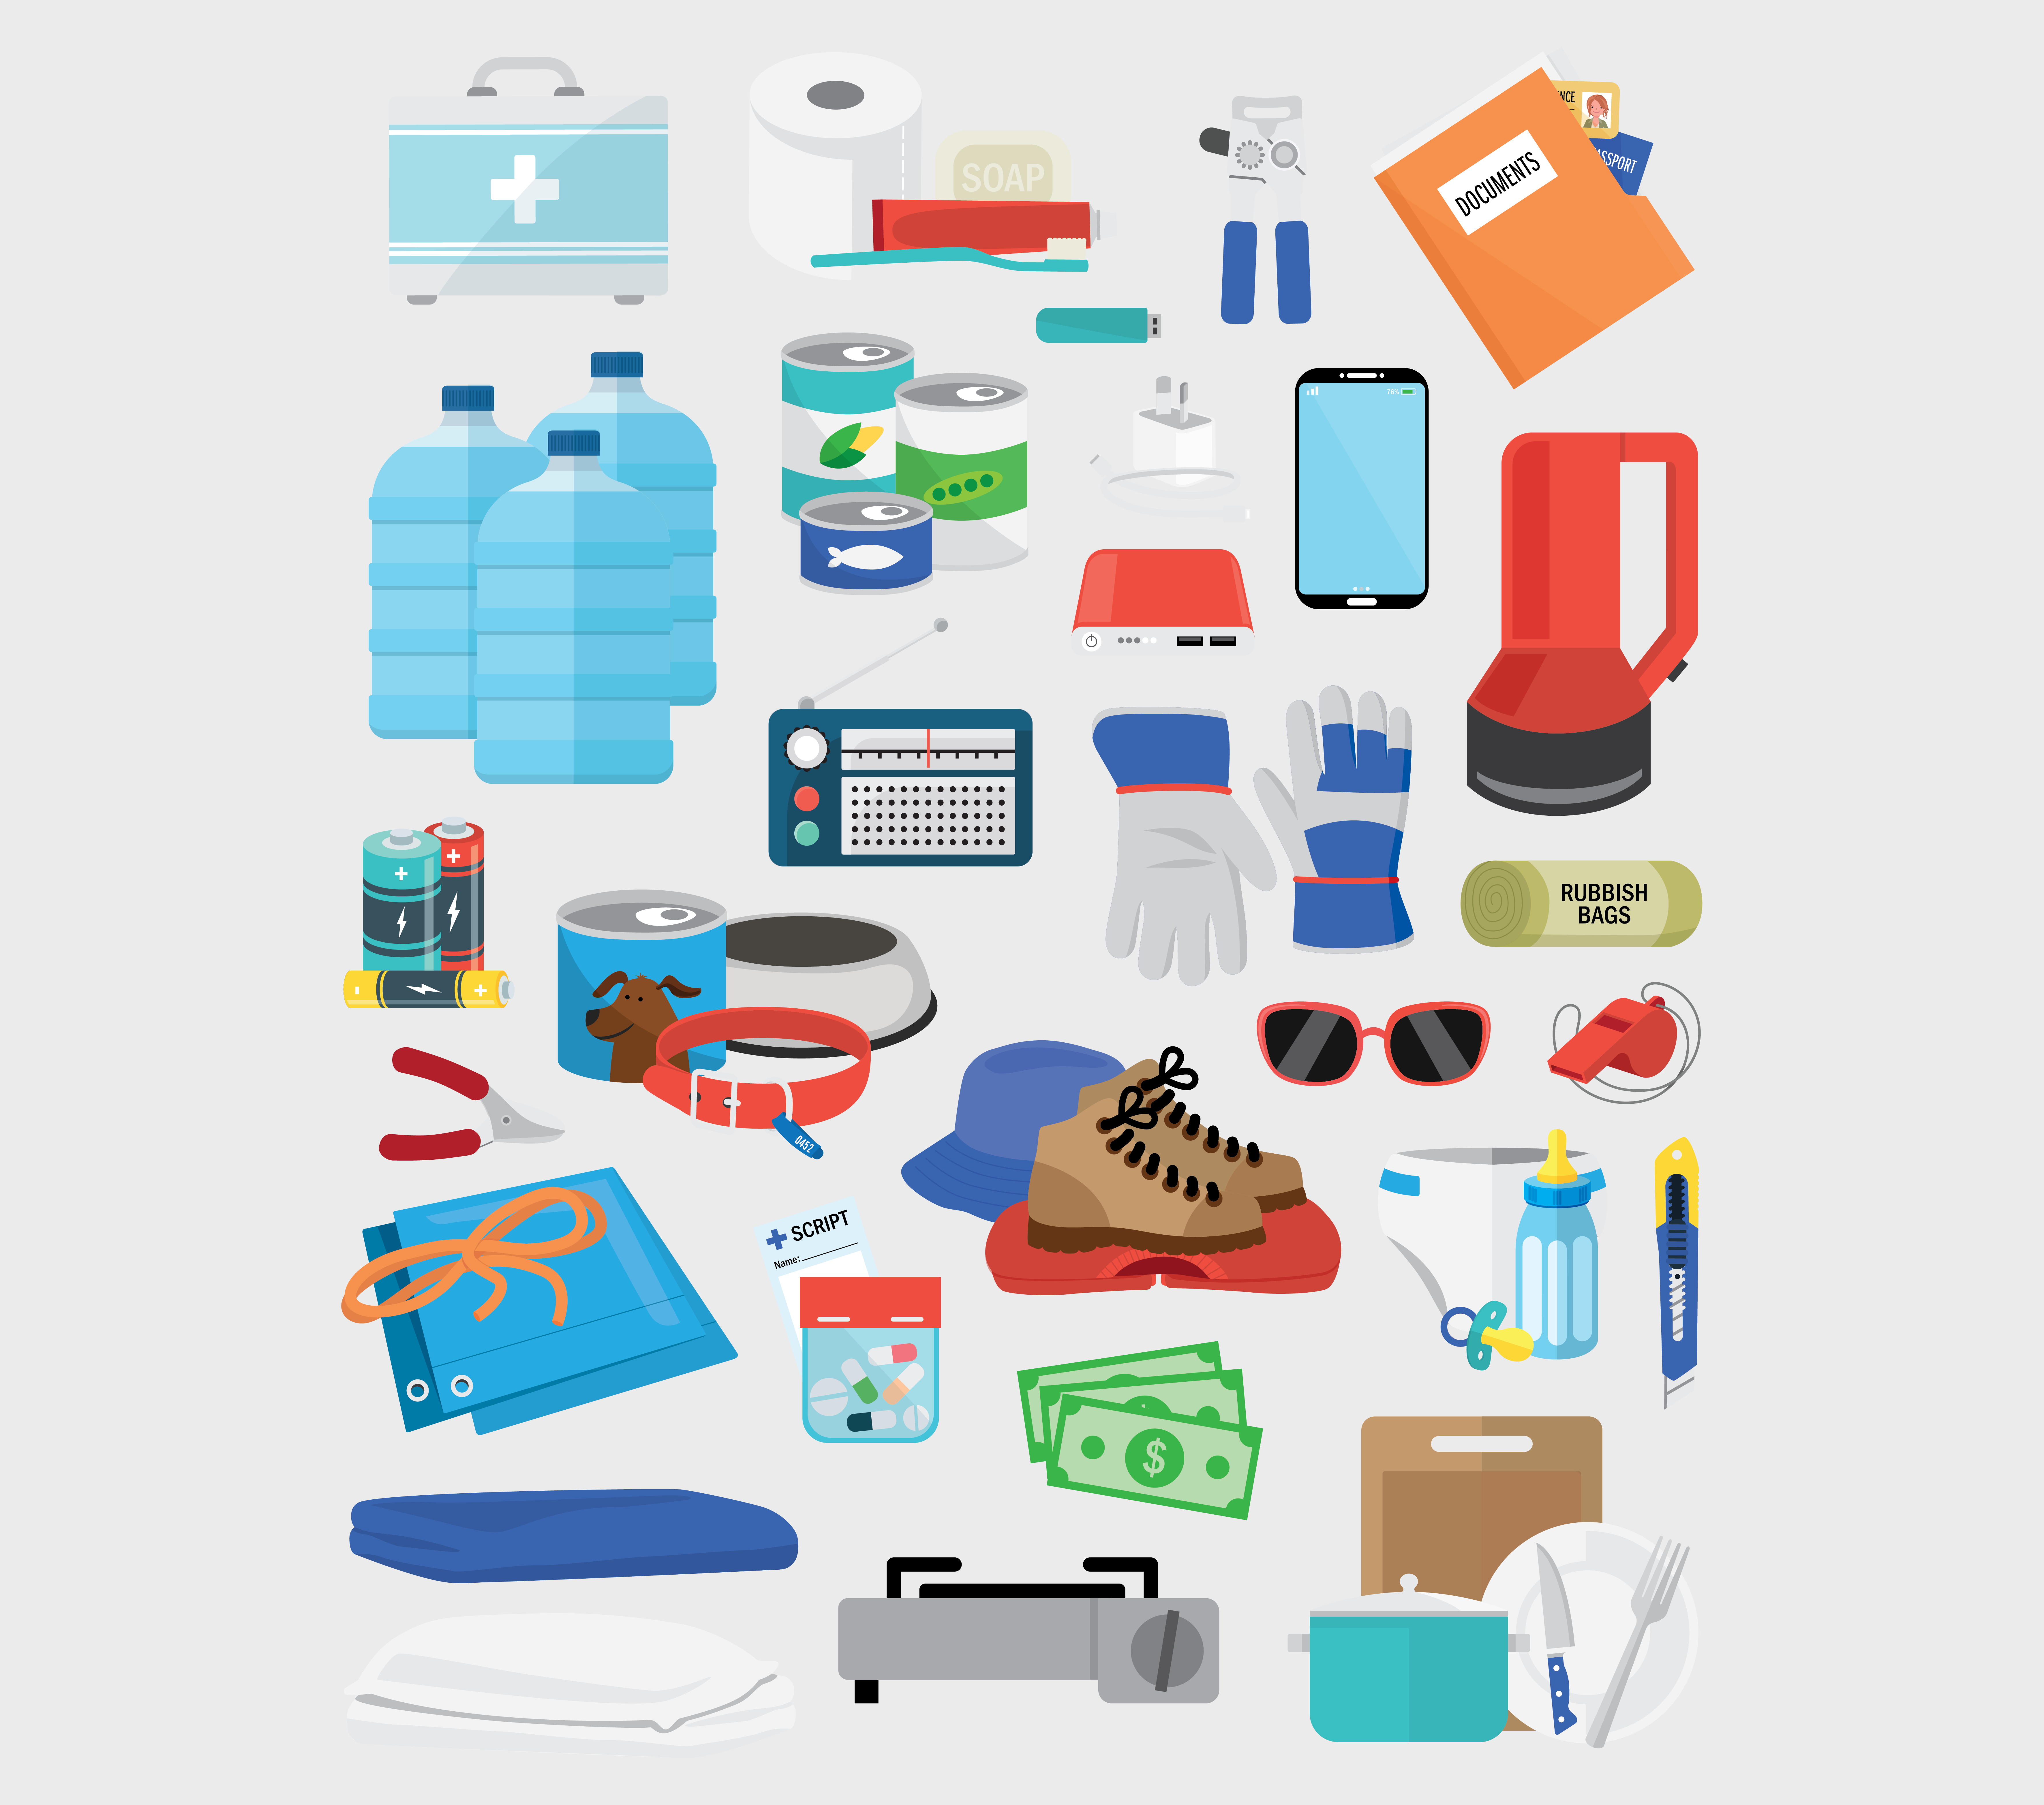 Comprehensive emergency kit items